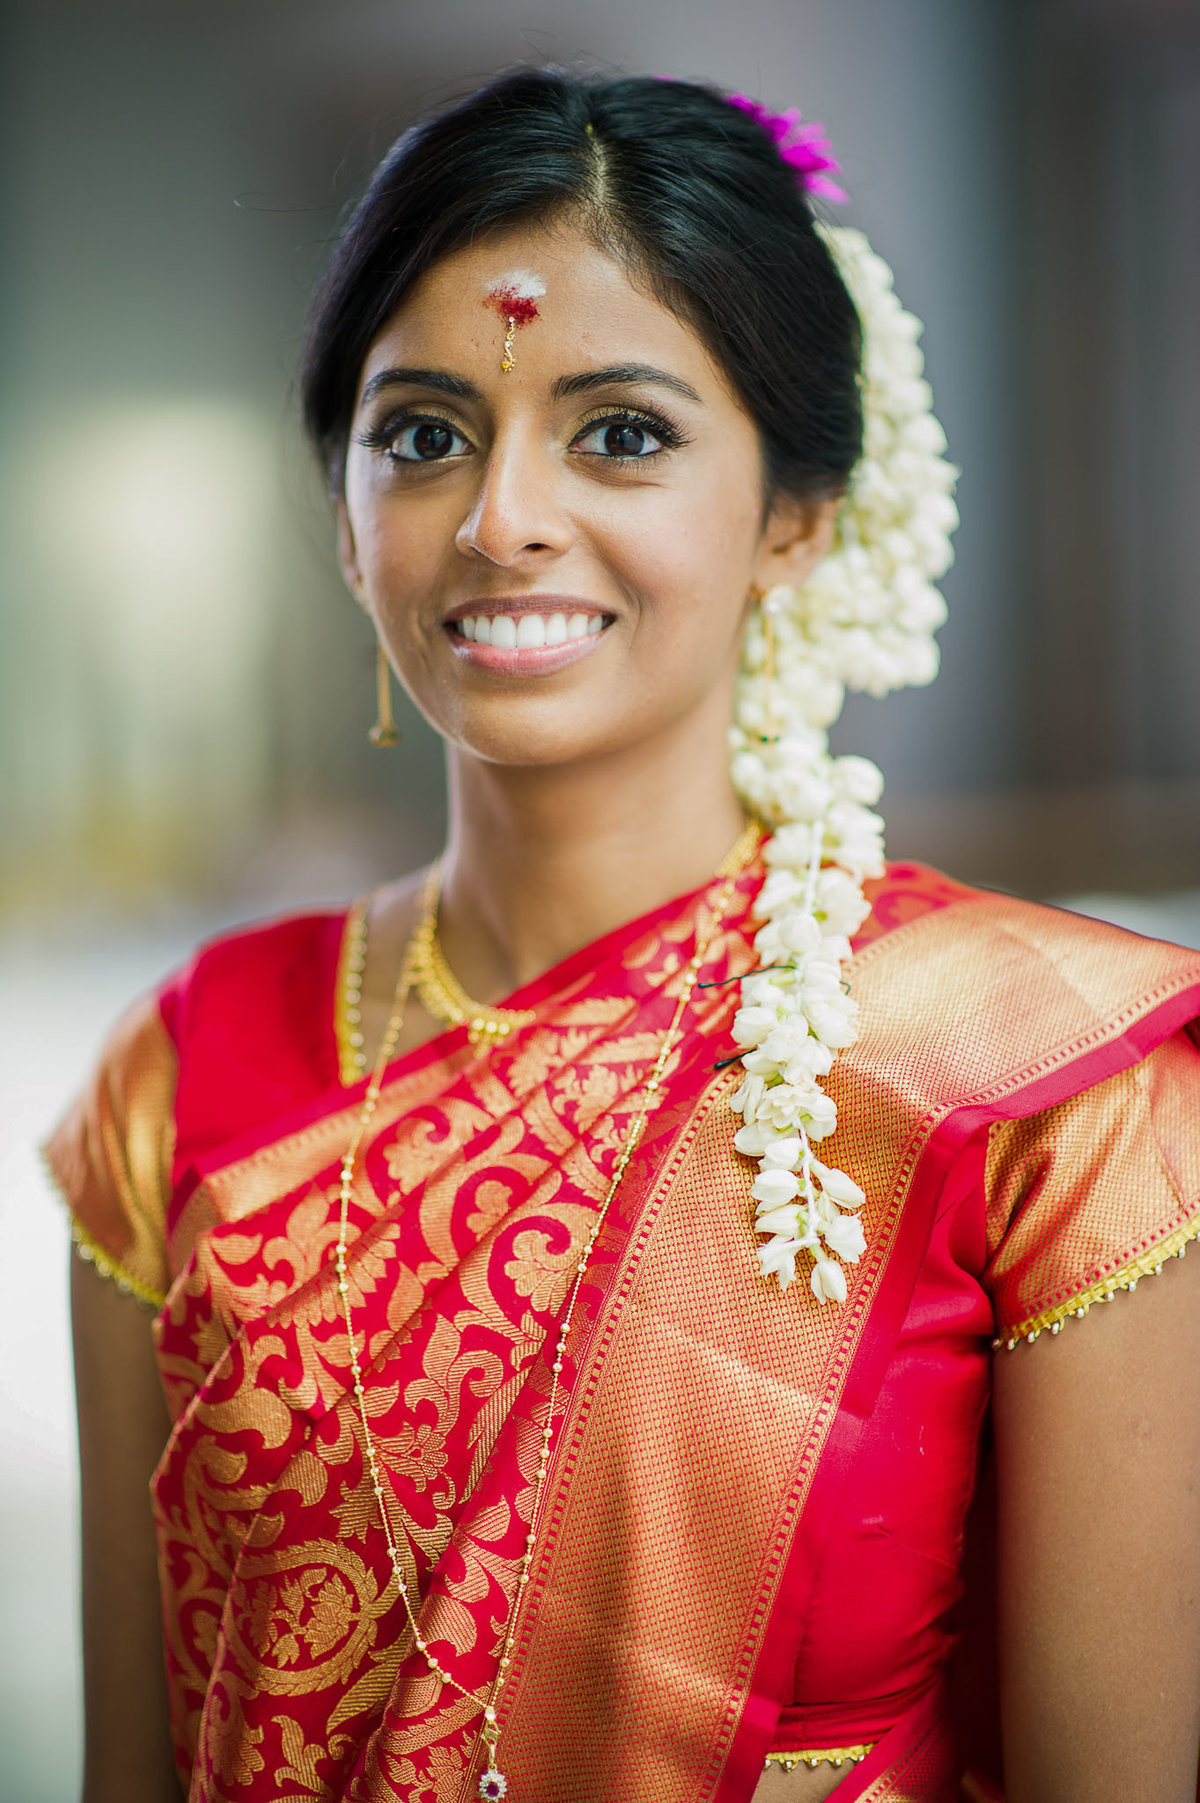 Harold-Washington-Library-South-Asian-Wedding-107